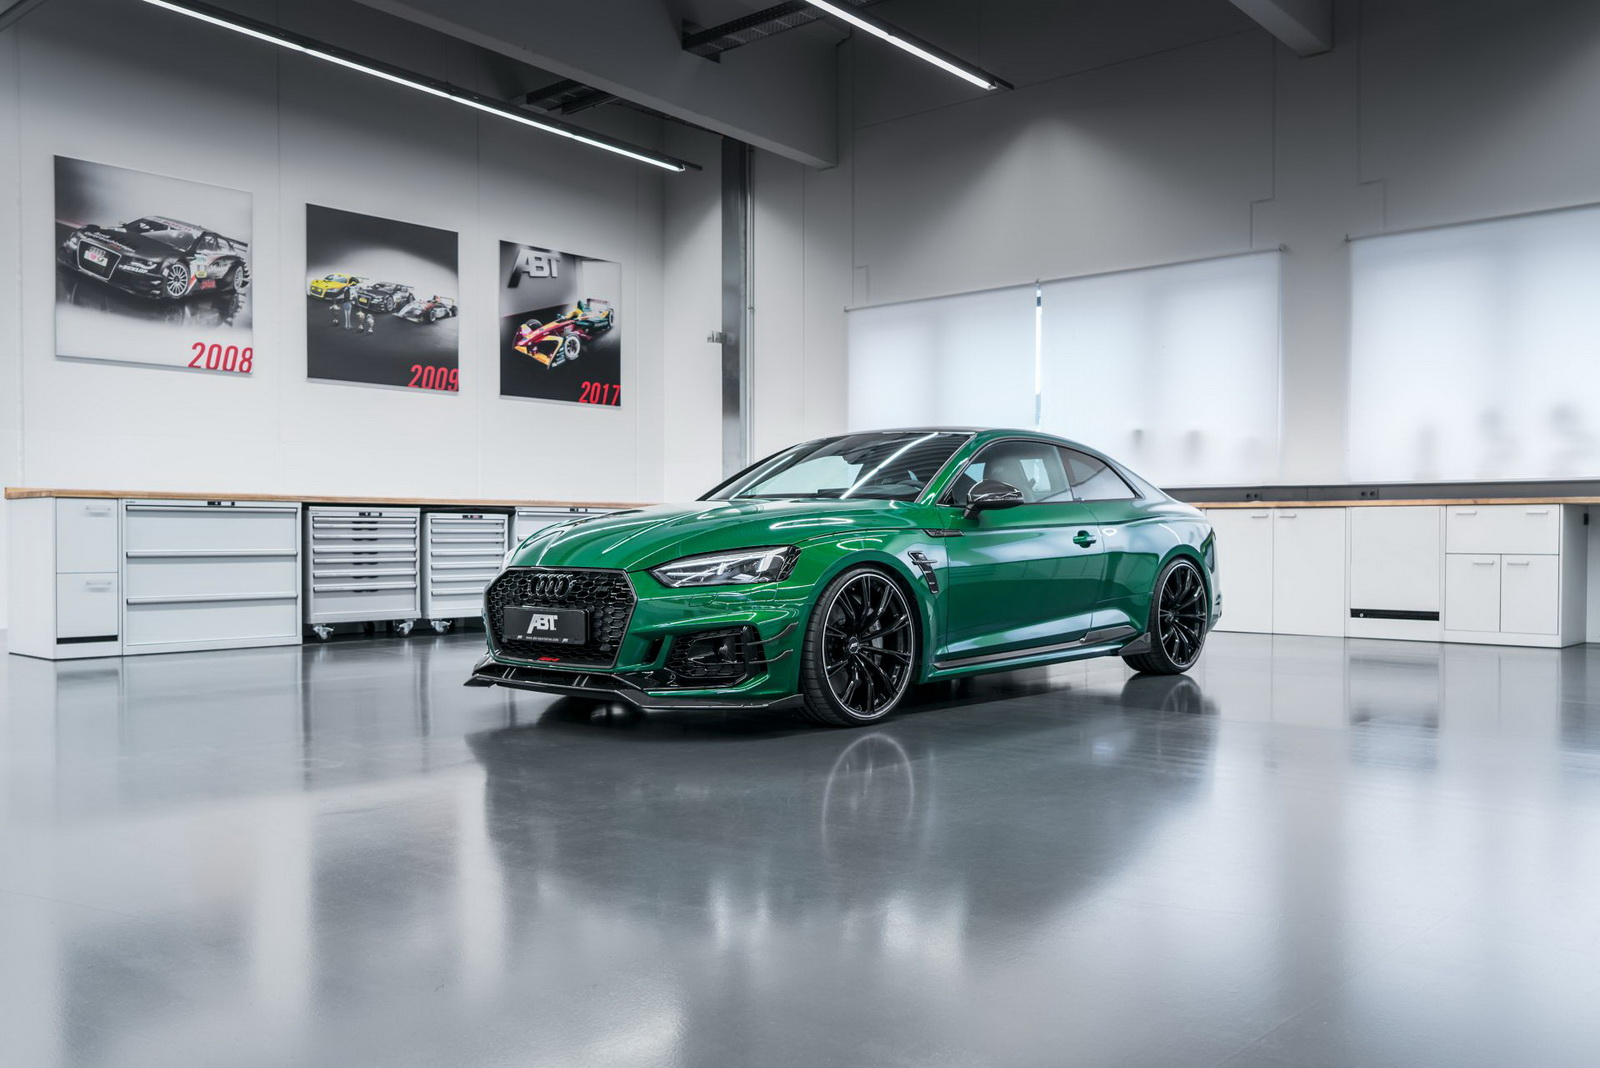 abt-audi-rs5-r-tuning-4